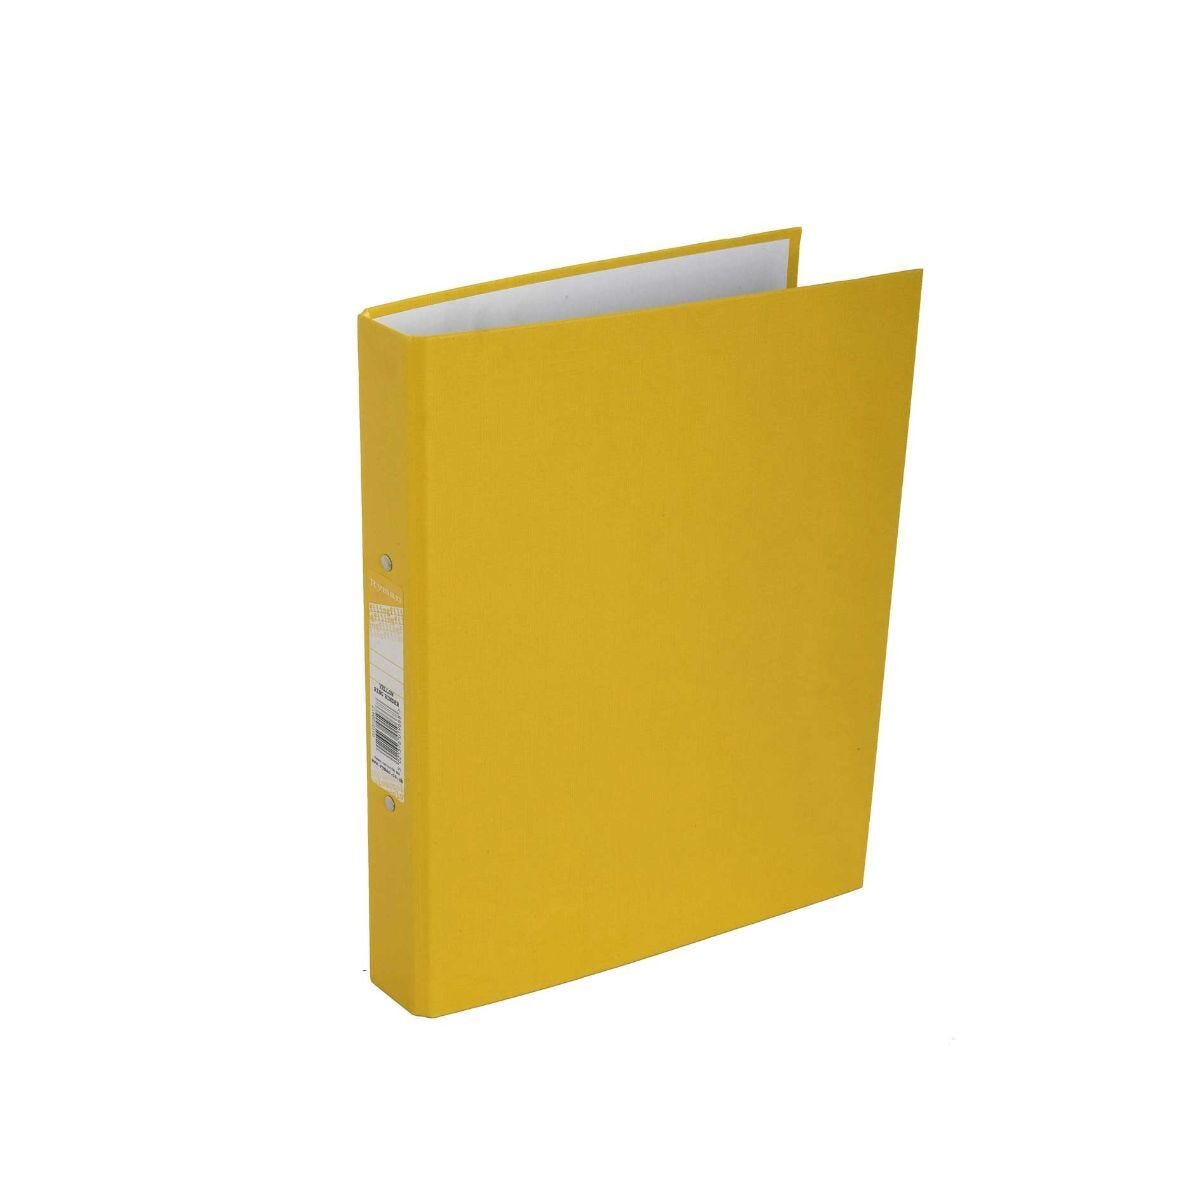 Ryman Colour Ringbinder A4 2-Ring Pack of 10 Yellow